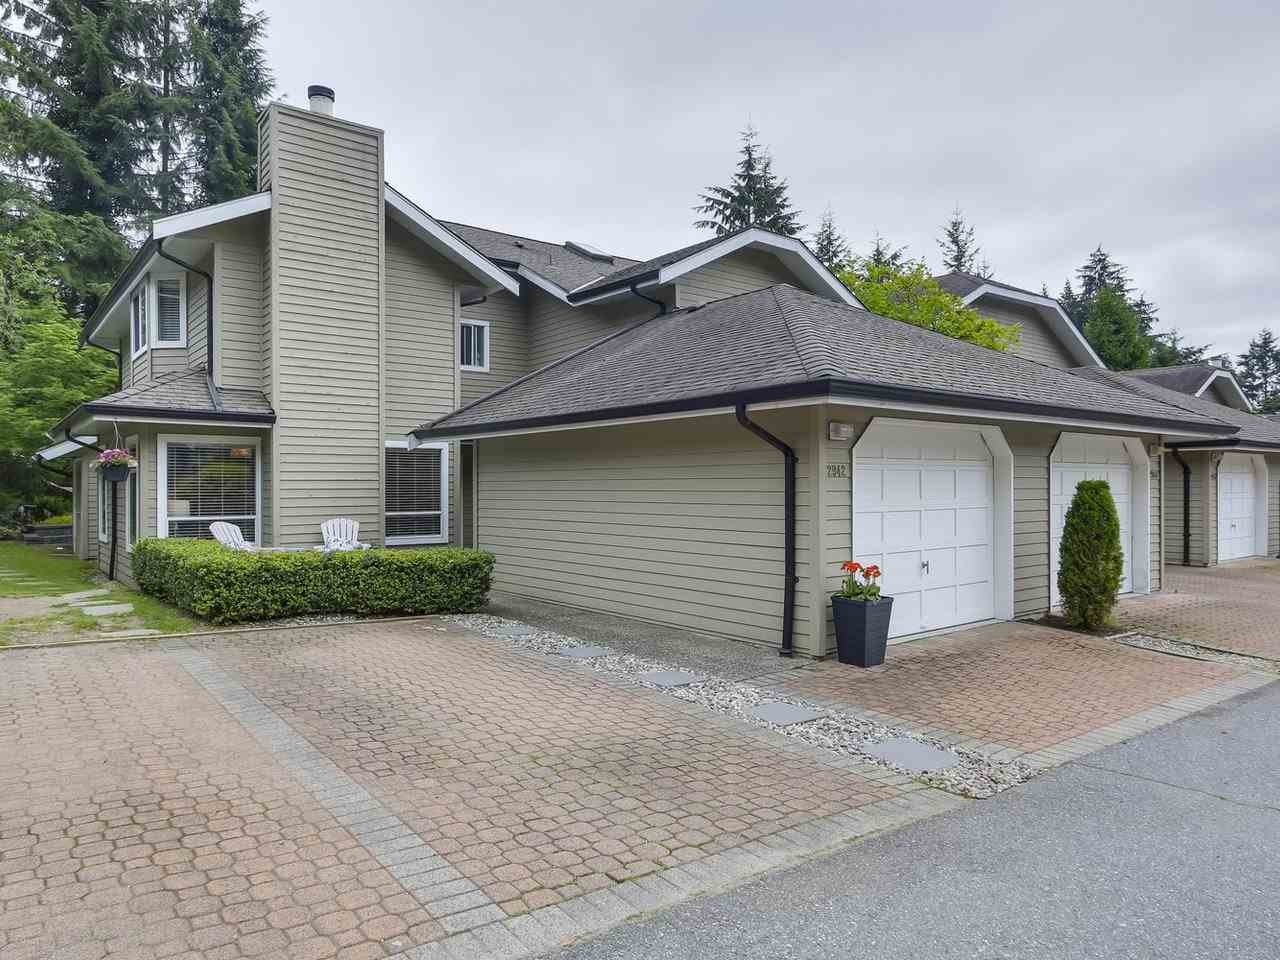 2942 MT SEYMOUR PARKWAY, 3 bed, 3 bath, at $1,038,000